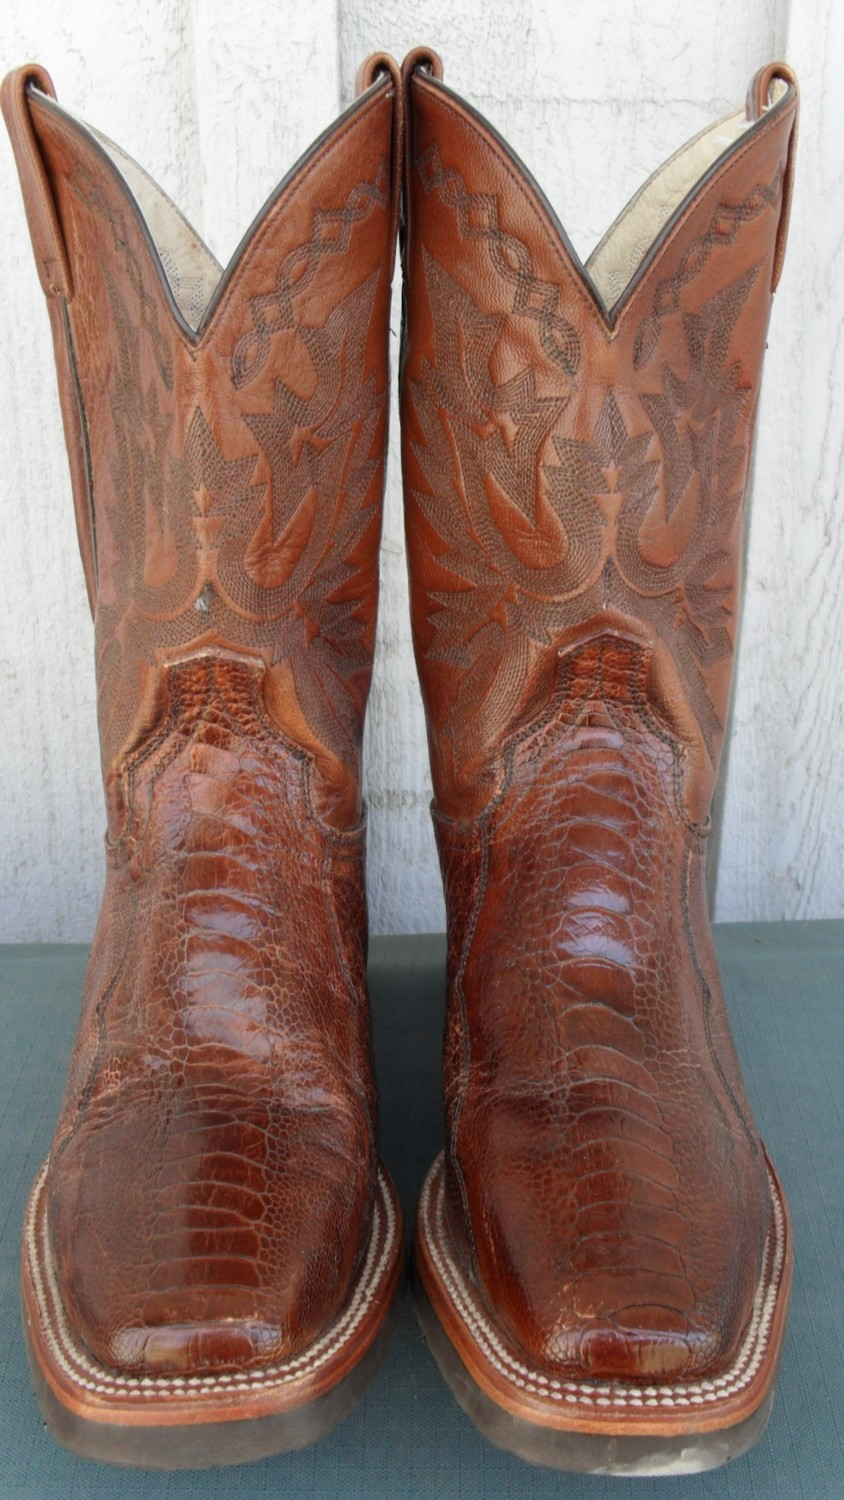 Walkin', Workin' or Two-Steppin'....these Nocona Boots Will Be Lookin' Good!!